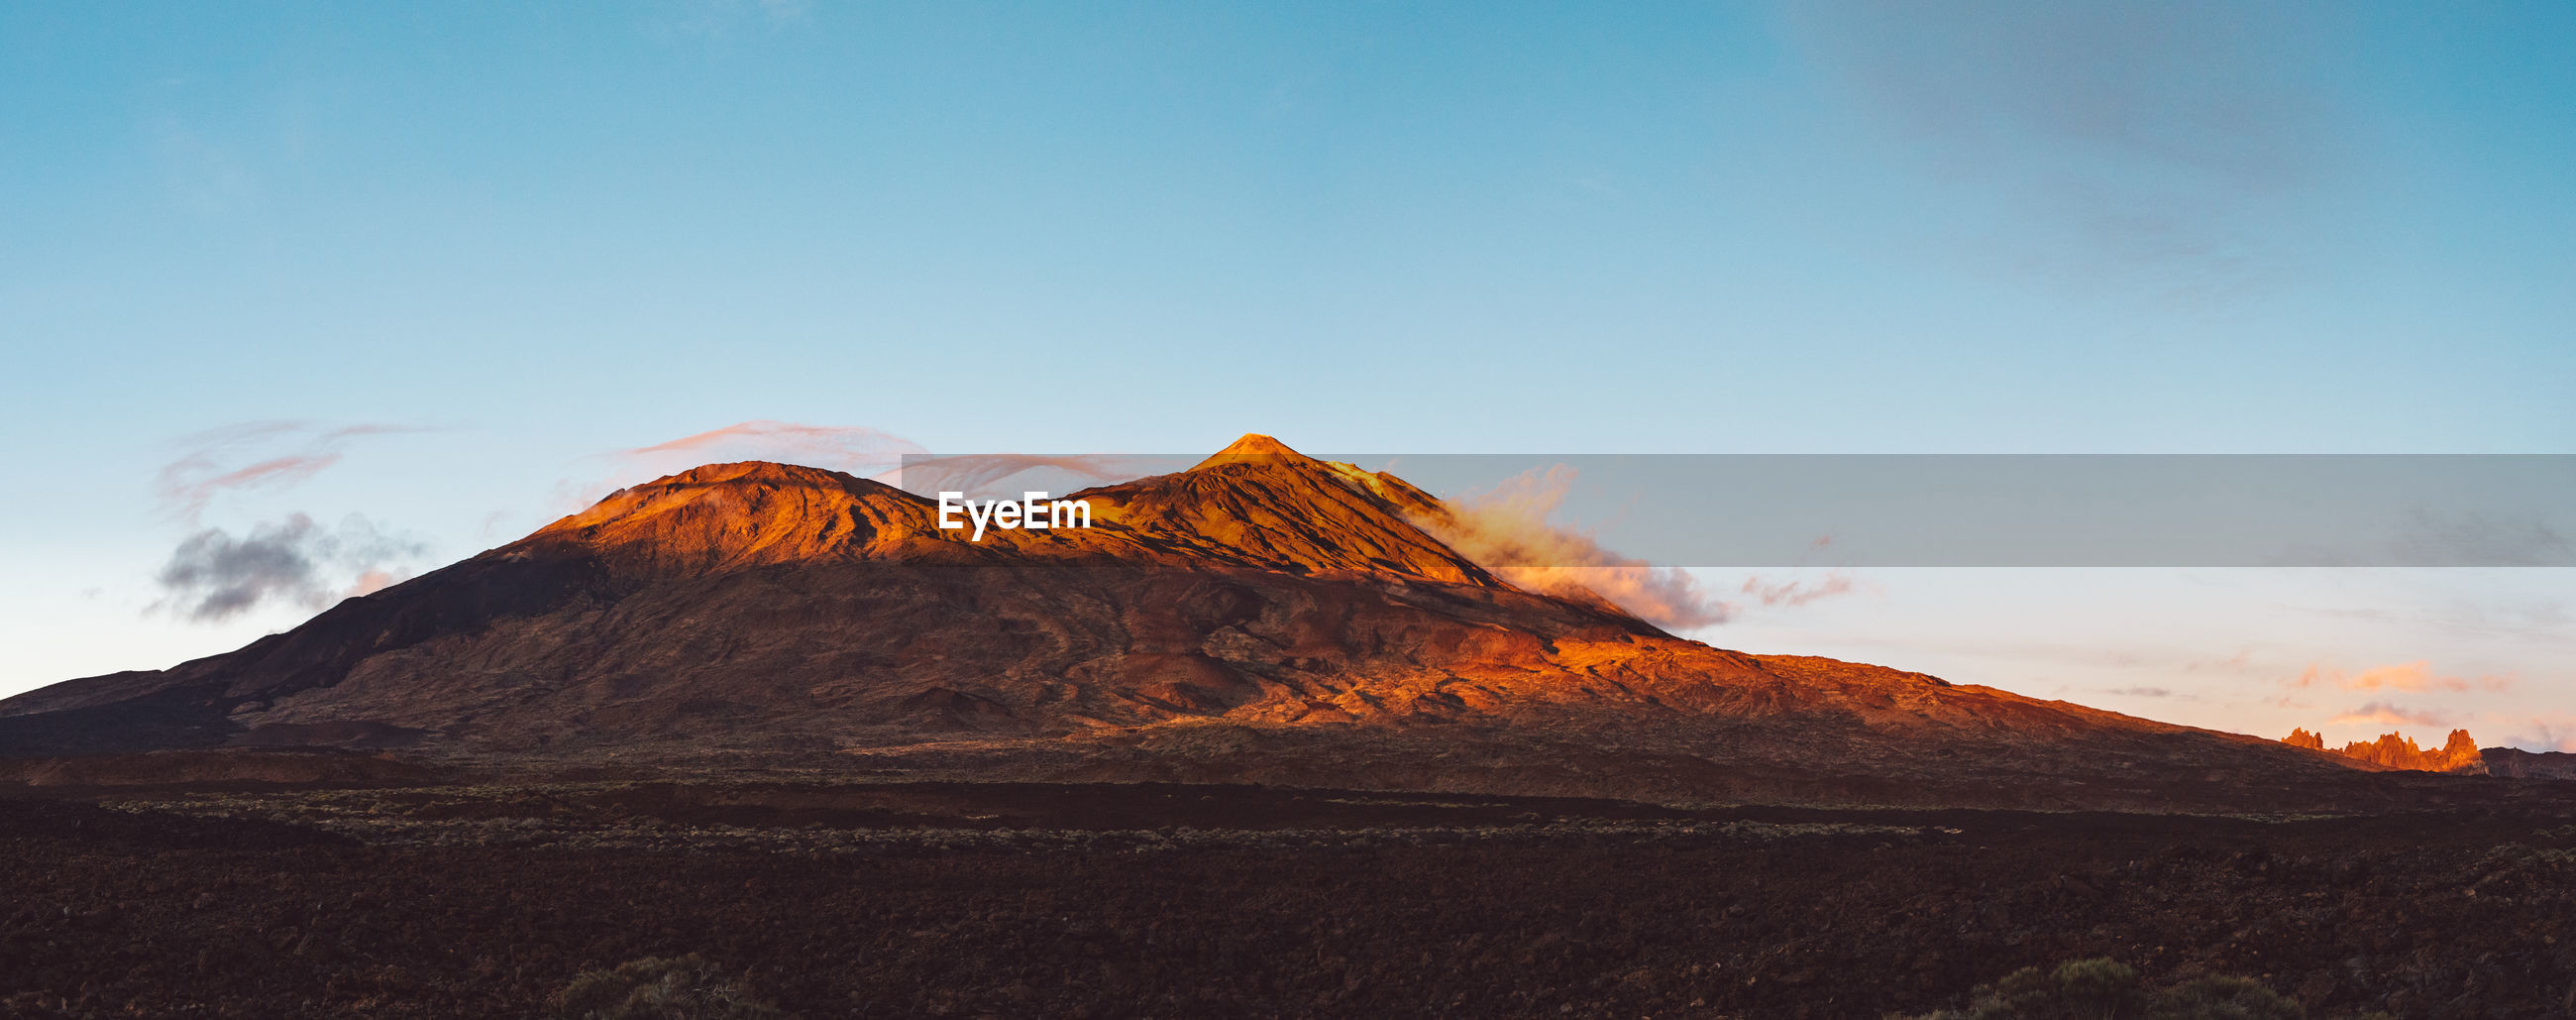 PANORAMIC VIEW OF VOLCANIC MOUNTAIN RANGE AGAINST SKY